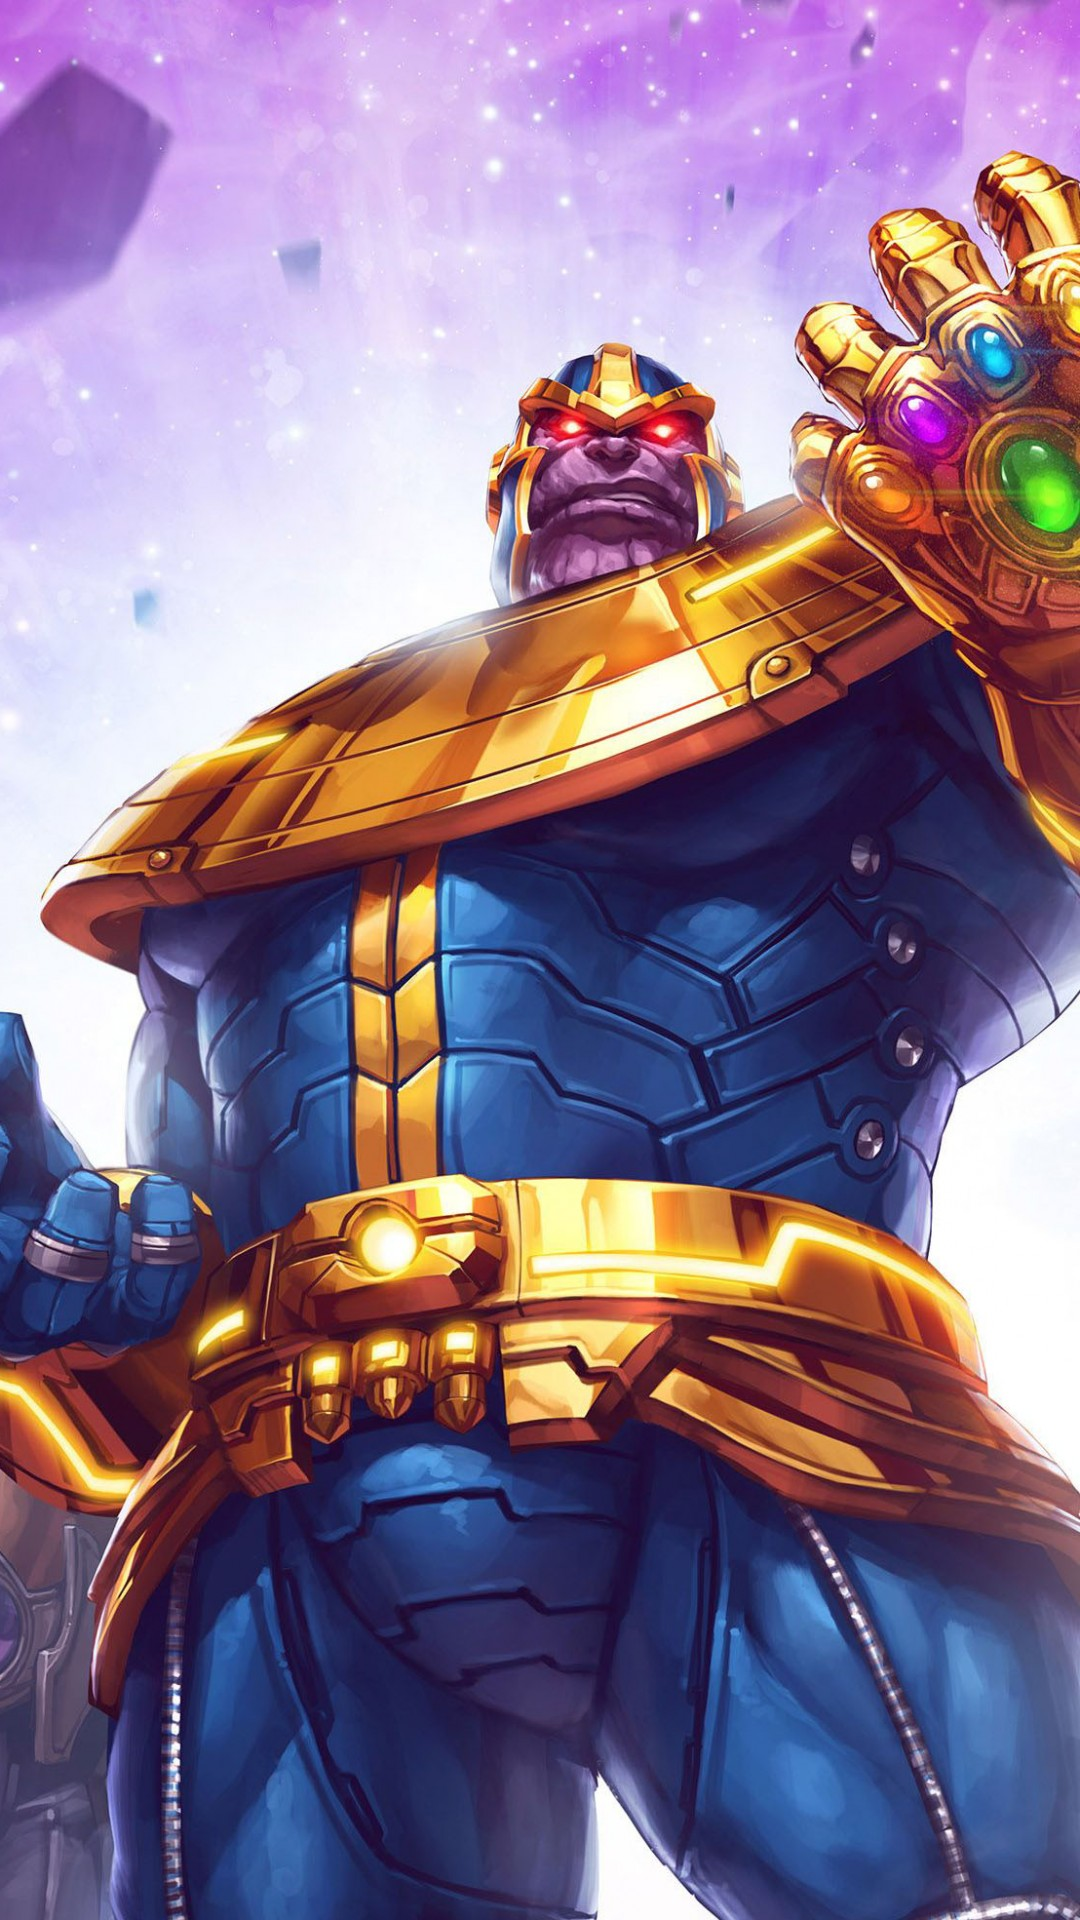 champions contest marvel 4k poster wallpapers games gaming 2k hd wallpapershome